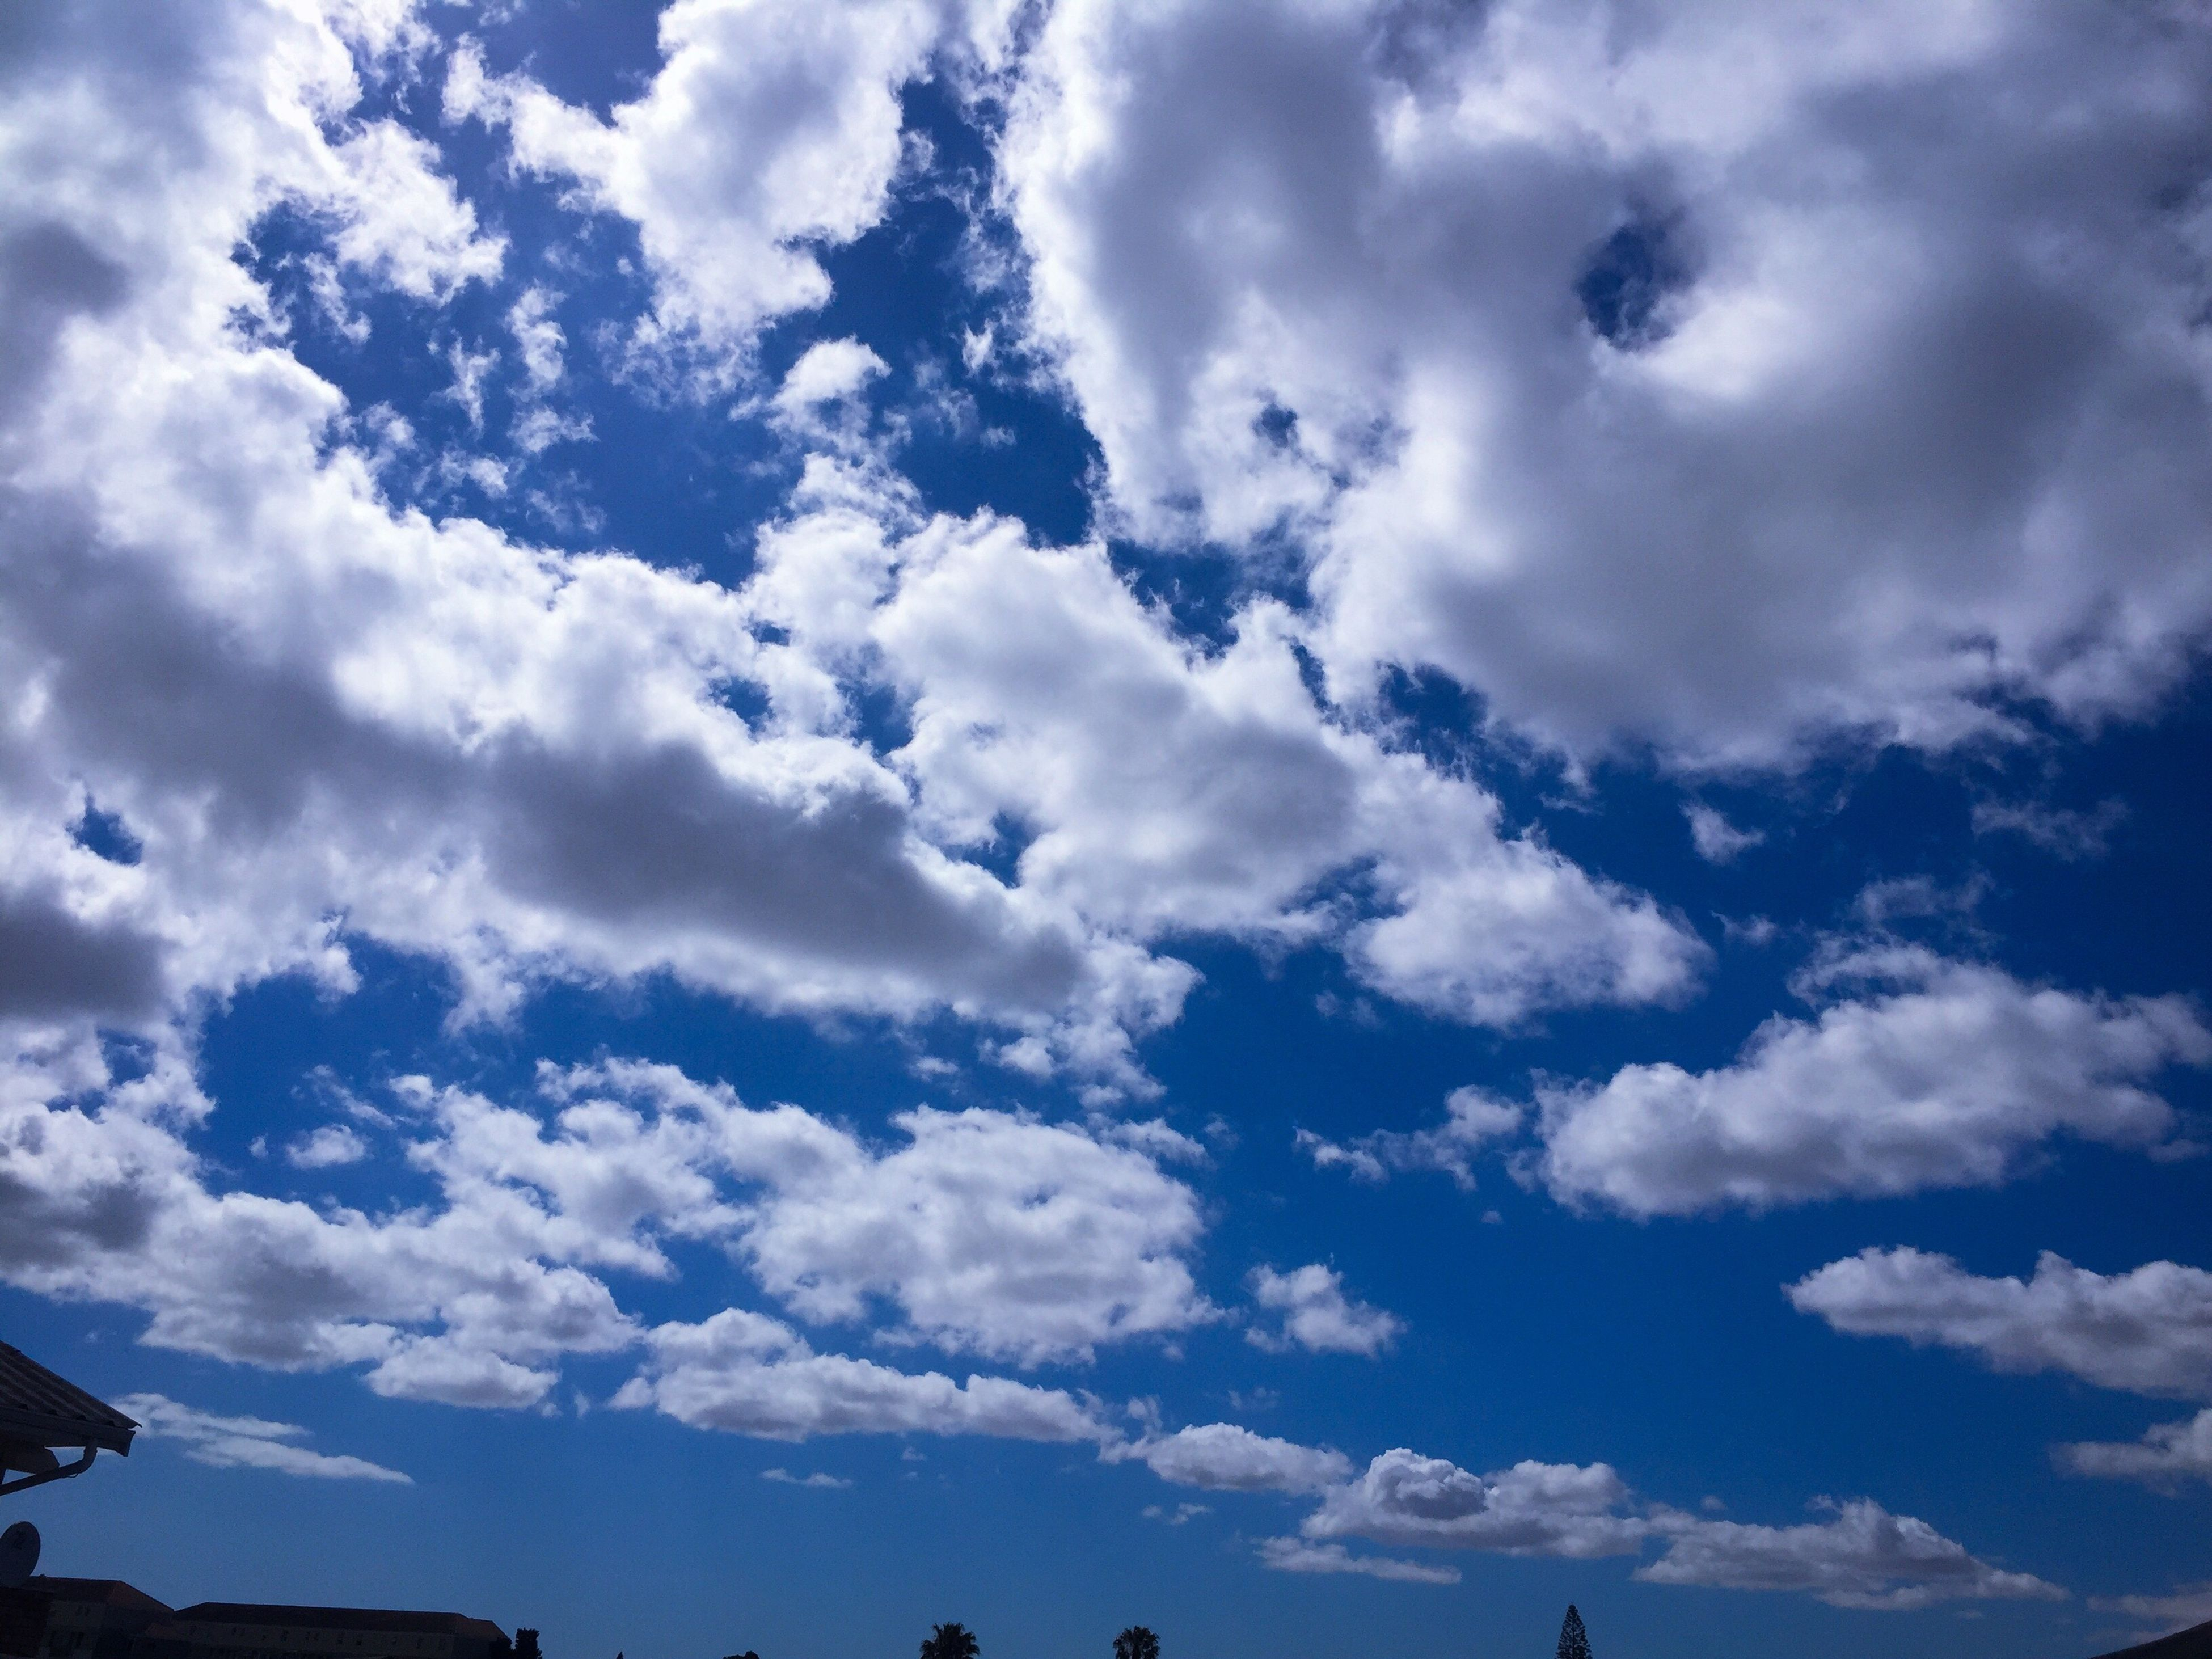 cloud - sky, sky, low angle view, nature, tranquility, beauty in nature, no people, scenics, day, outdoors